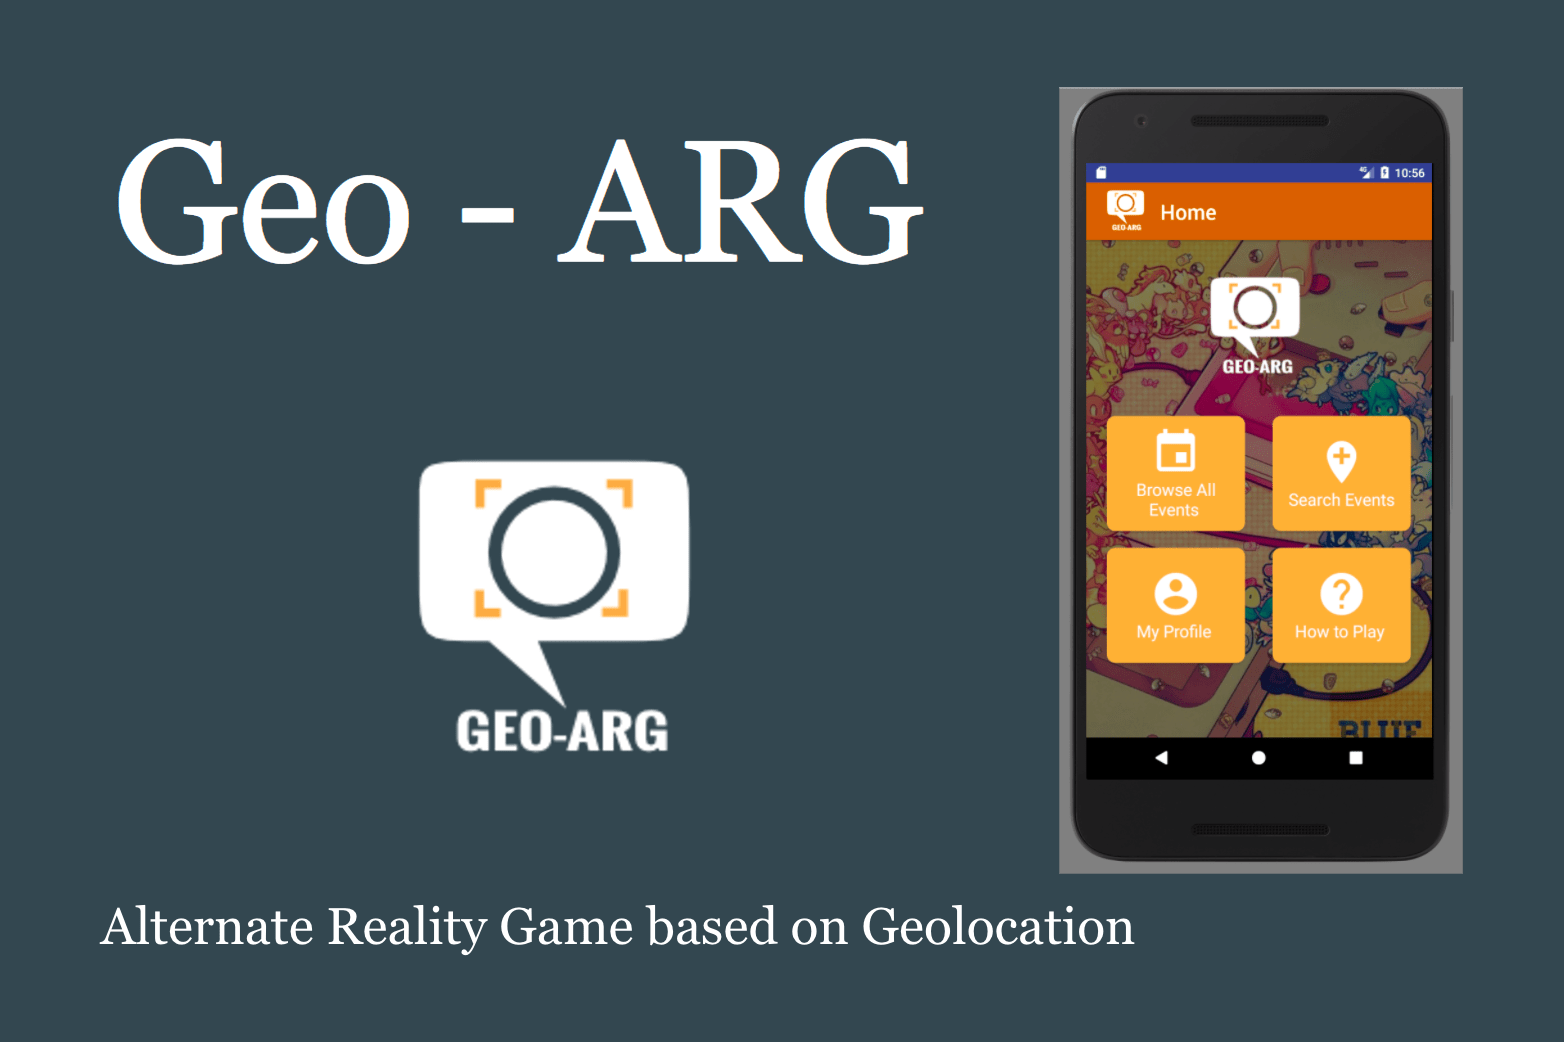 GitHub - Geo-ARG/Alternate-Reality-Game: A game based on geolocation where you can socialize with others